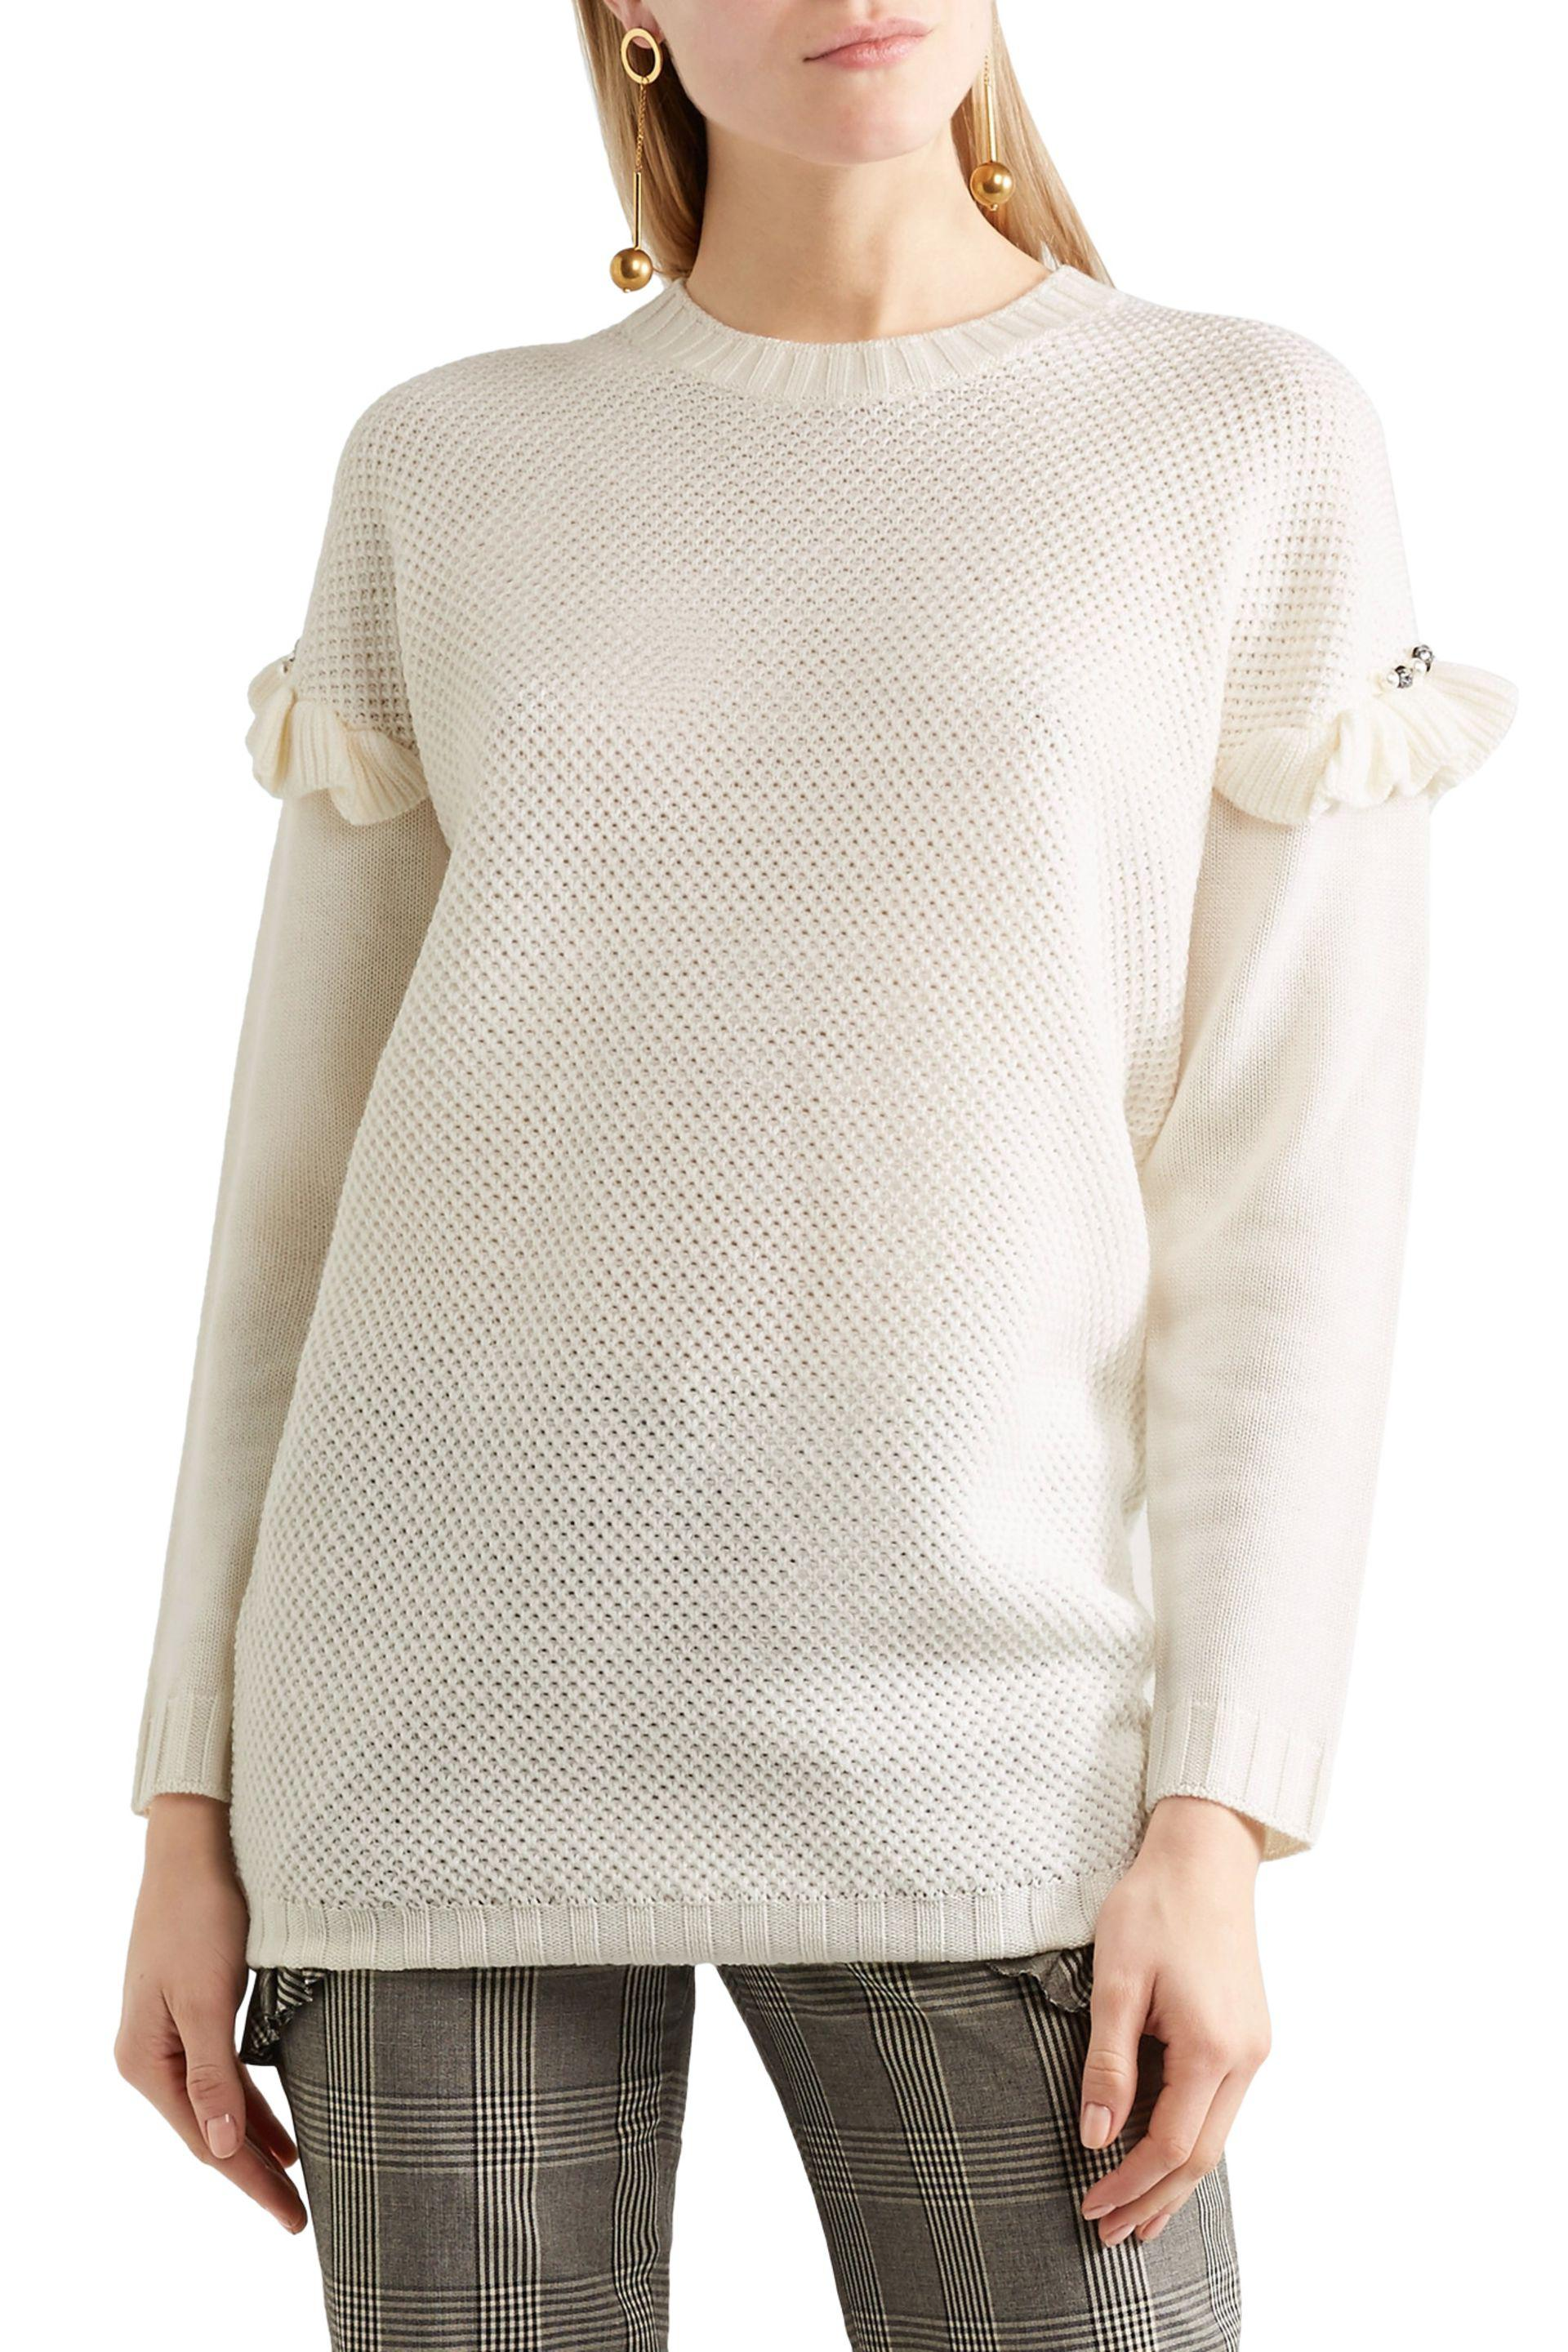 Mother Of Pearl - White Freda Embellished Ruffle-trimmed Waffle-knit Wool- blend. View Fullscreen